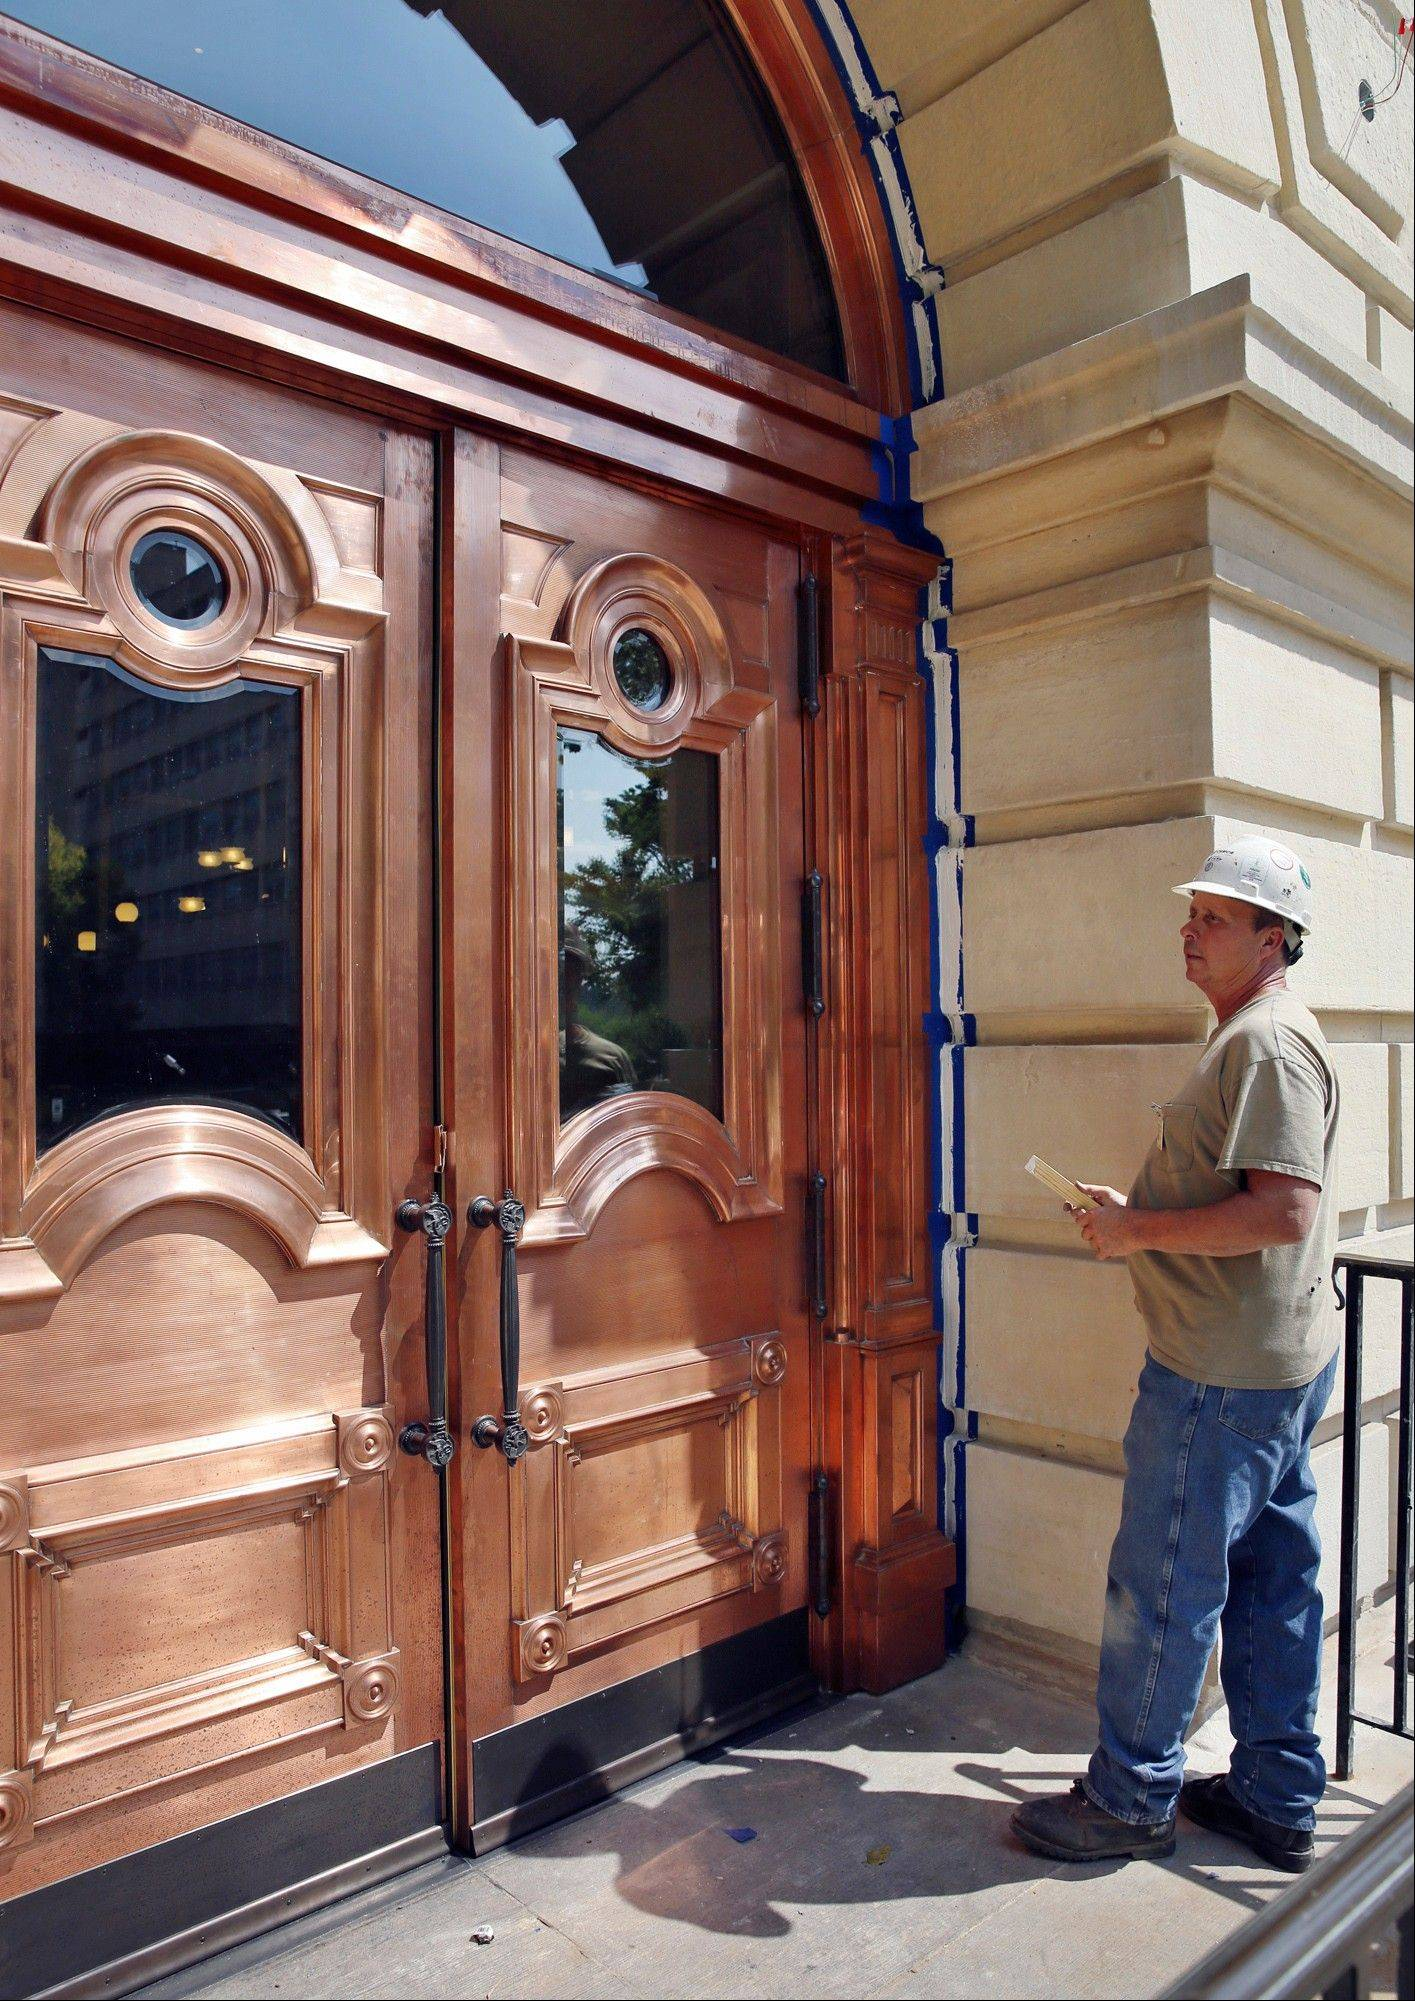 Bill Werner finishes up work on the copper-covered doors for the west entrance to the state Capitol last month in Springfield. The $50 million renovation of the building includes three sets of copper-covered wooden doorways that cost $669,608.